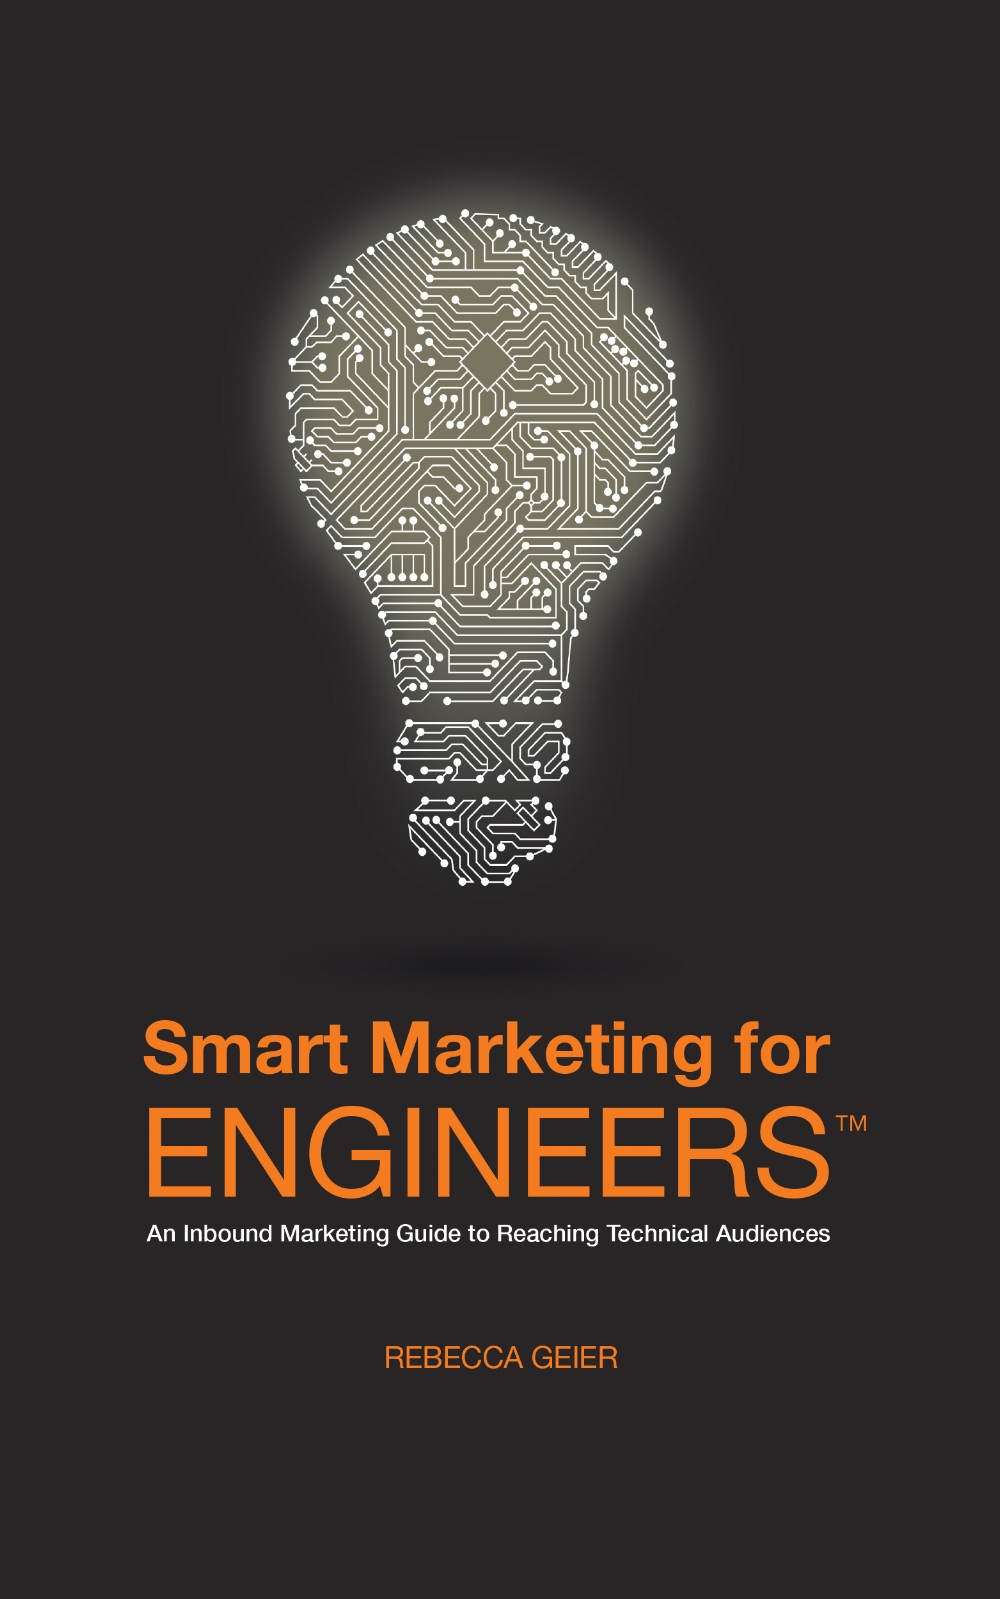 Rebecca Geier wrote the book on marketing to engineers. Check out the 5-star reviews by other engineers on Amazon    here   .